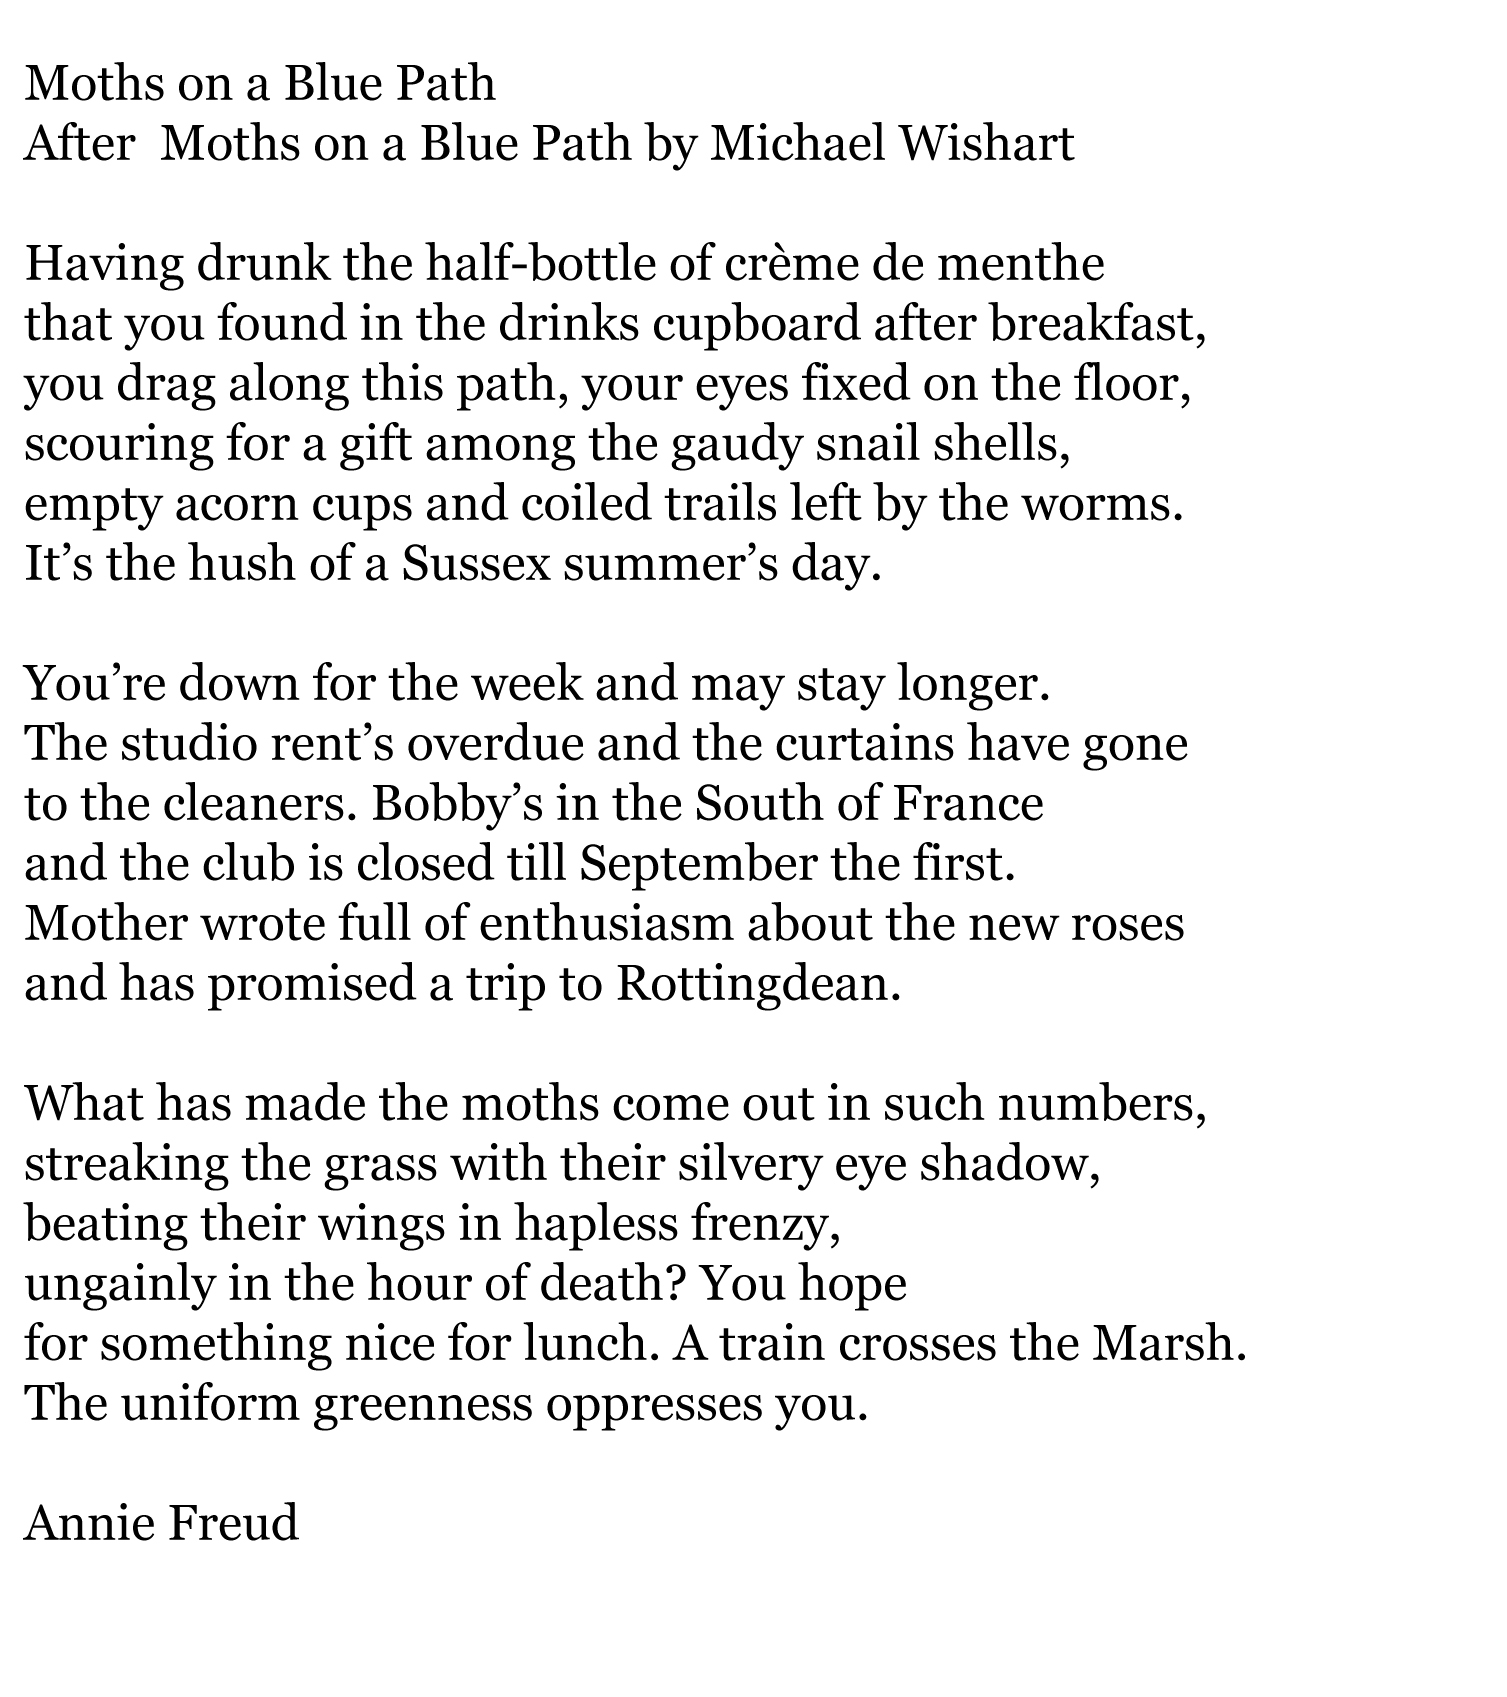 annie freud and the girls poetry sat sladers yard moths on a blue path annie freud copy